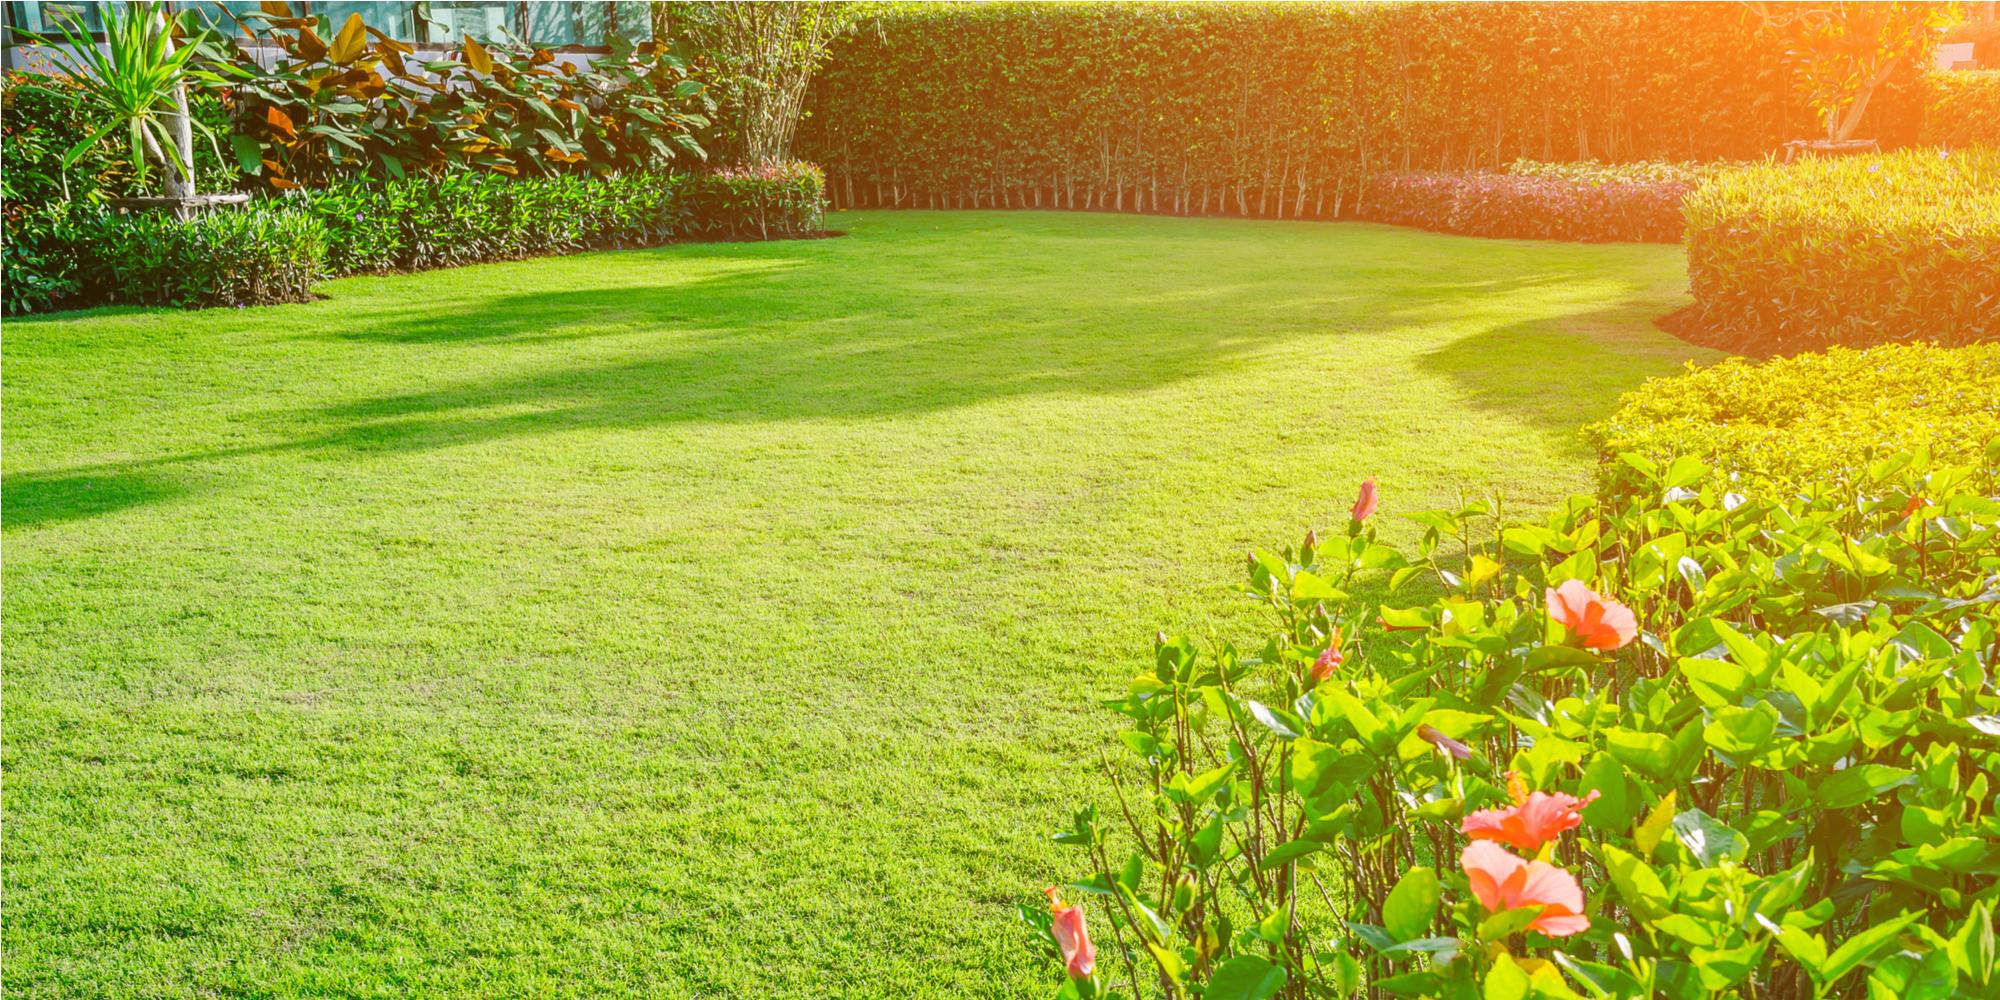 Environmentalists believe that the modern lawn more harm than good